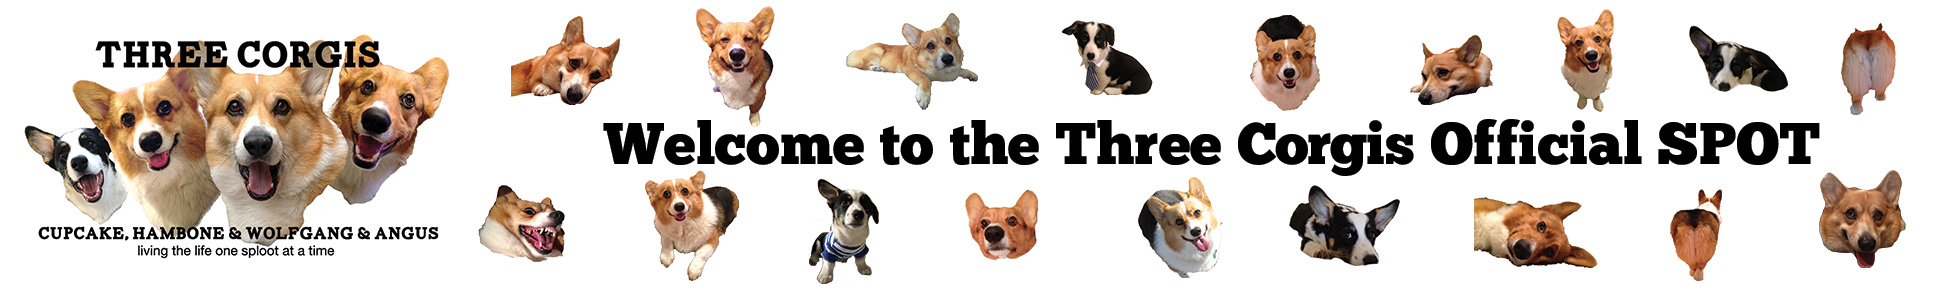 Three Corgis Official Blog